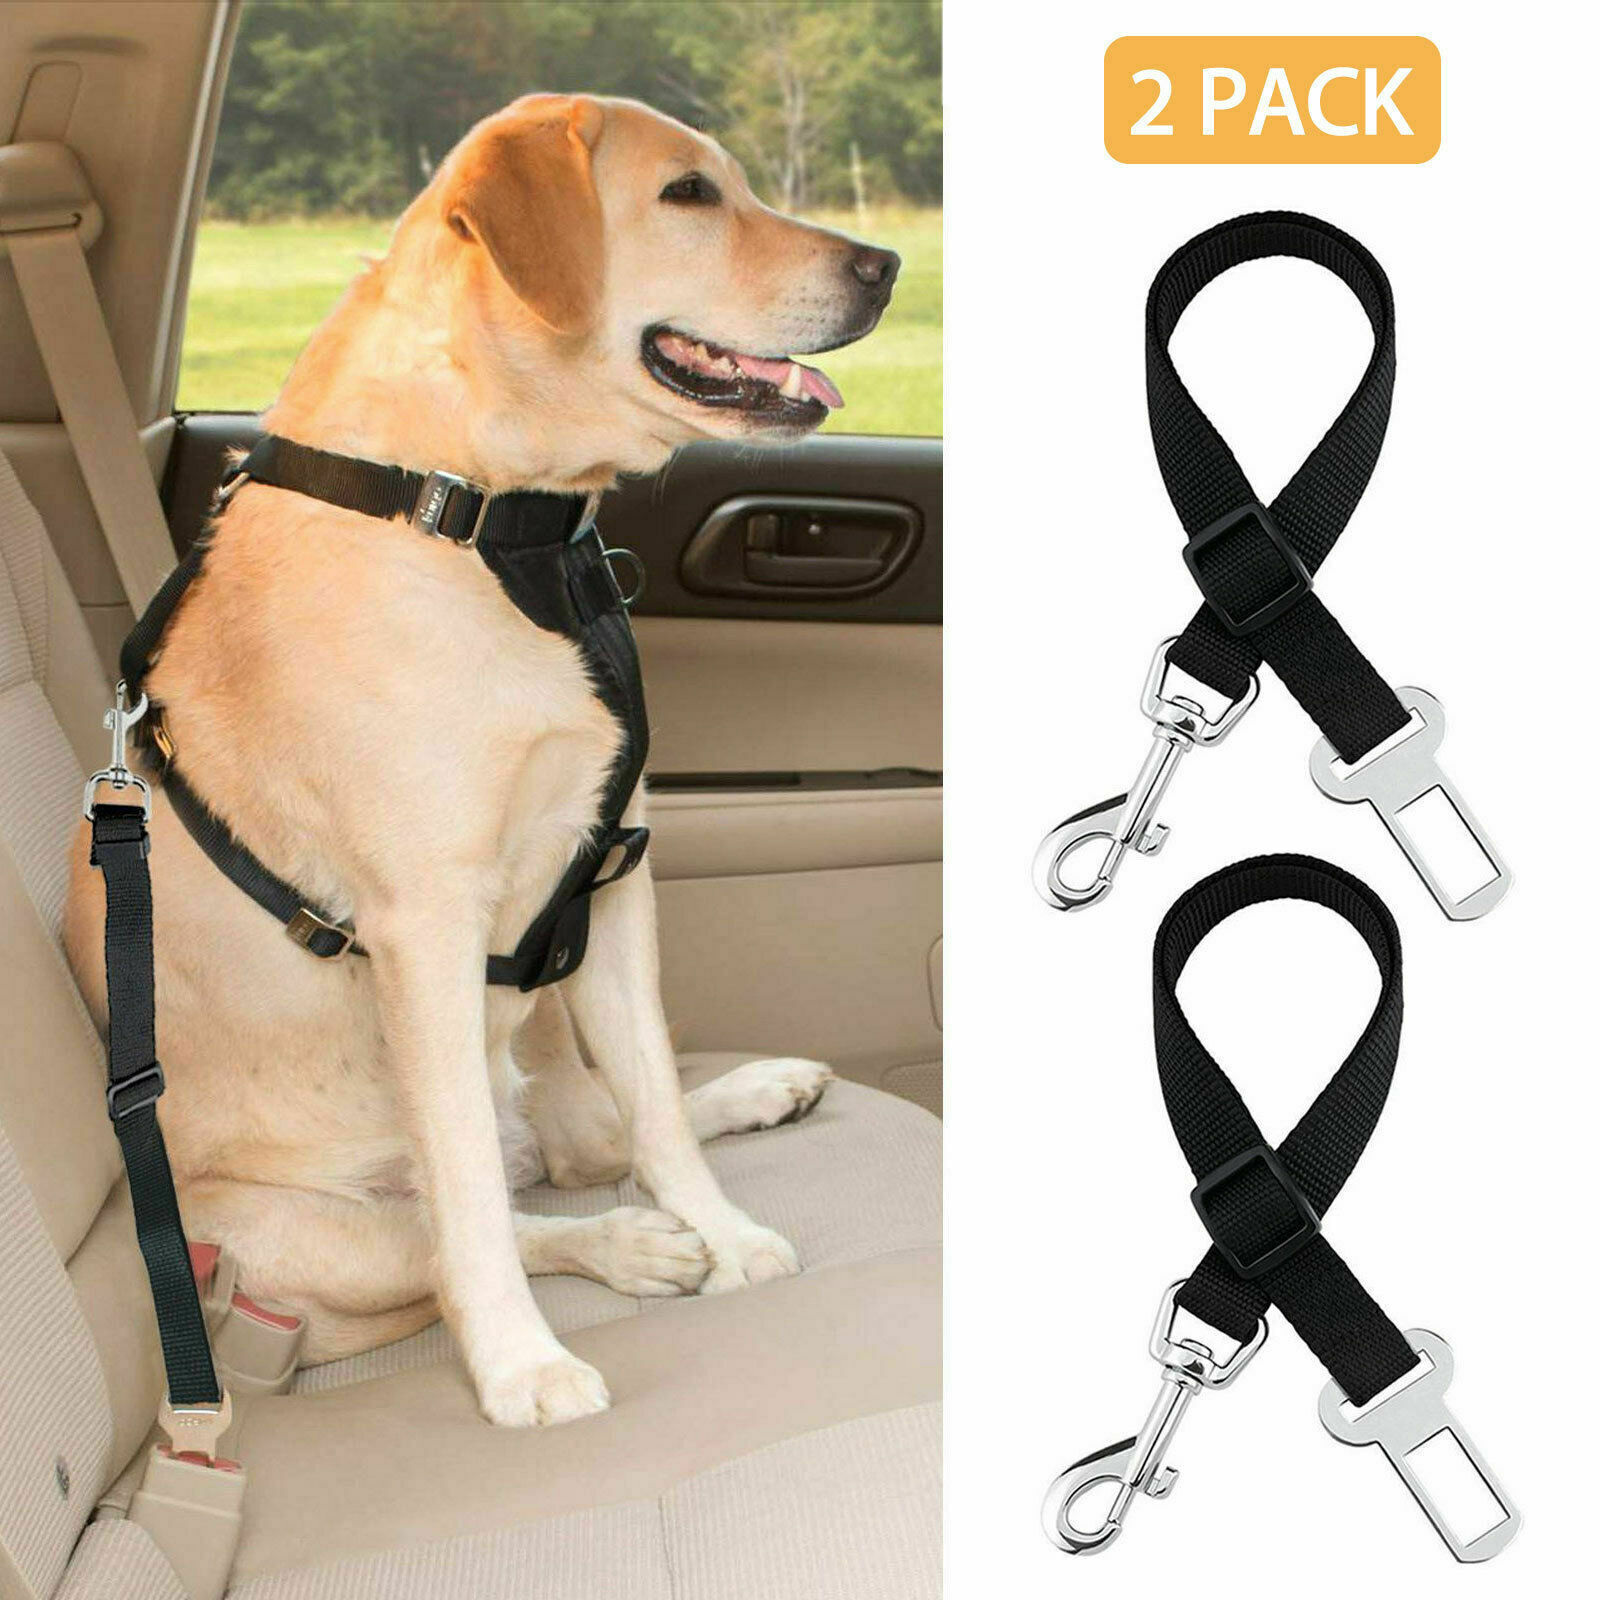 2 Pack Cat Dog Pet Safety Seatbelt for Car Seat Belt Adjustable Harness Lead Dog Supplies